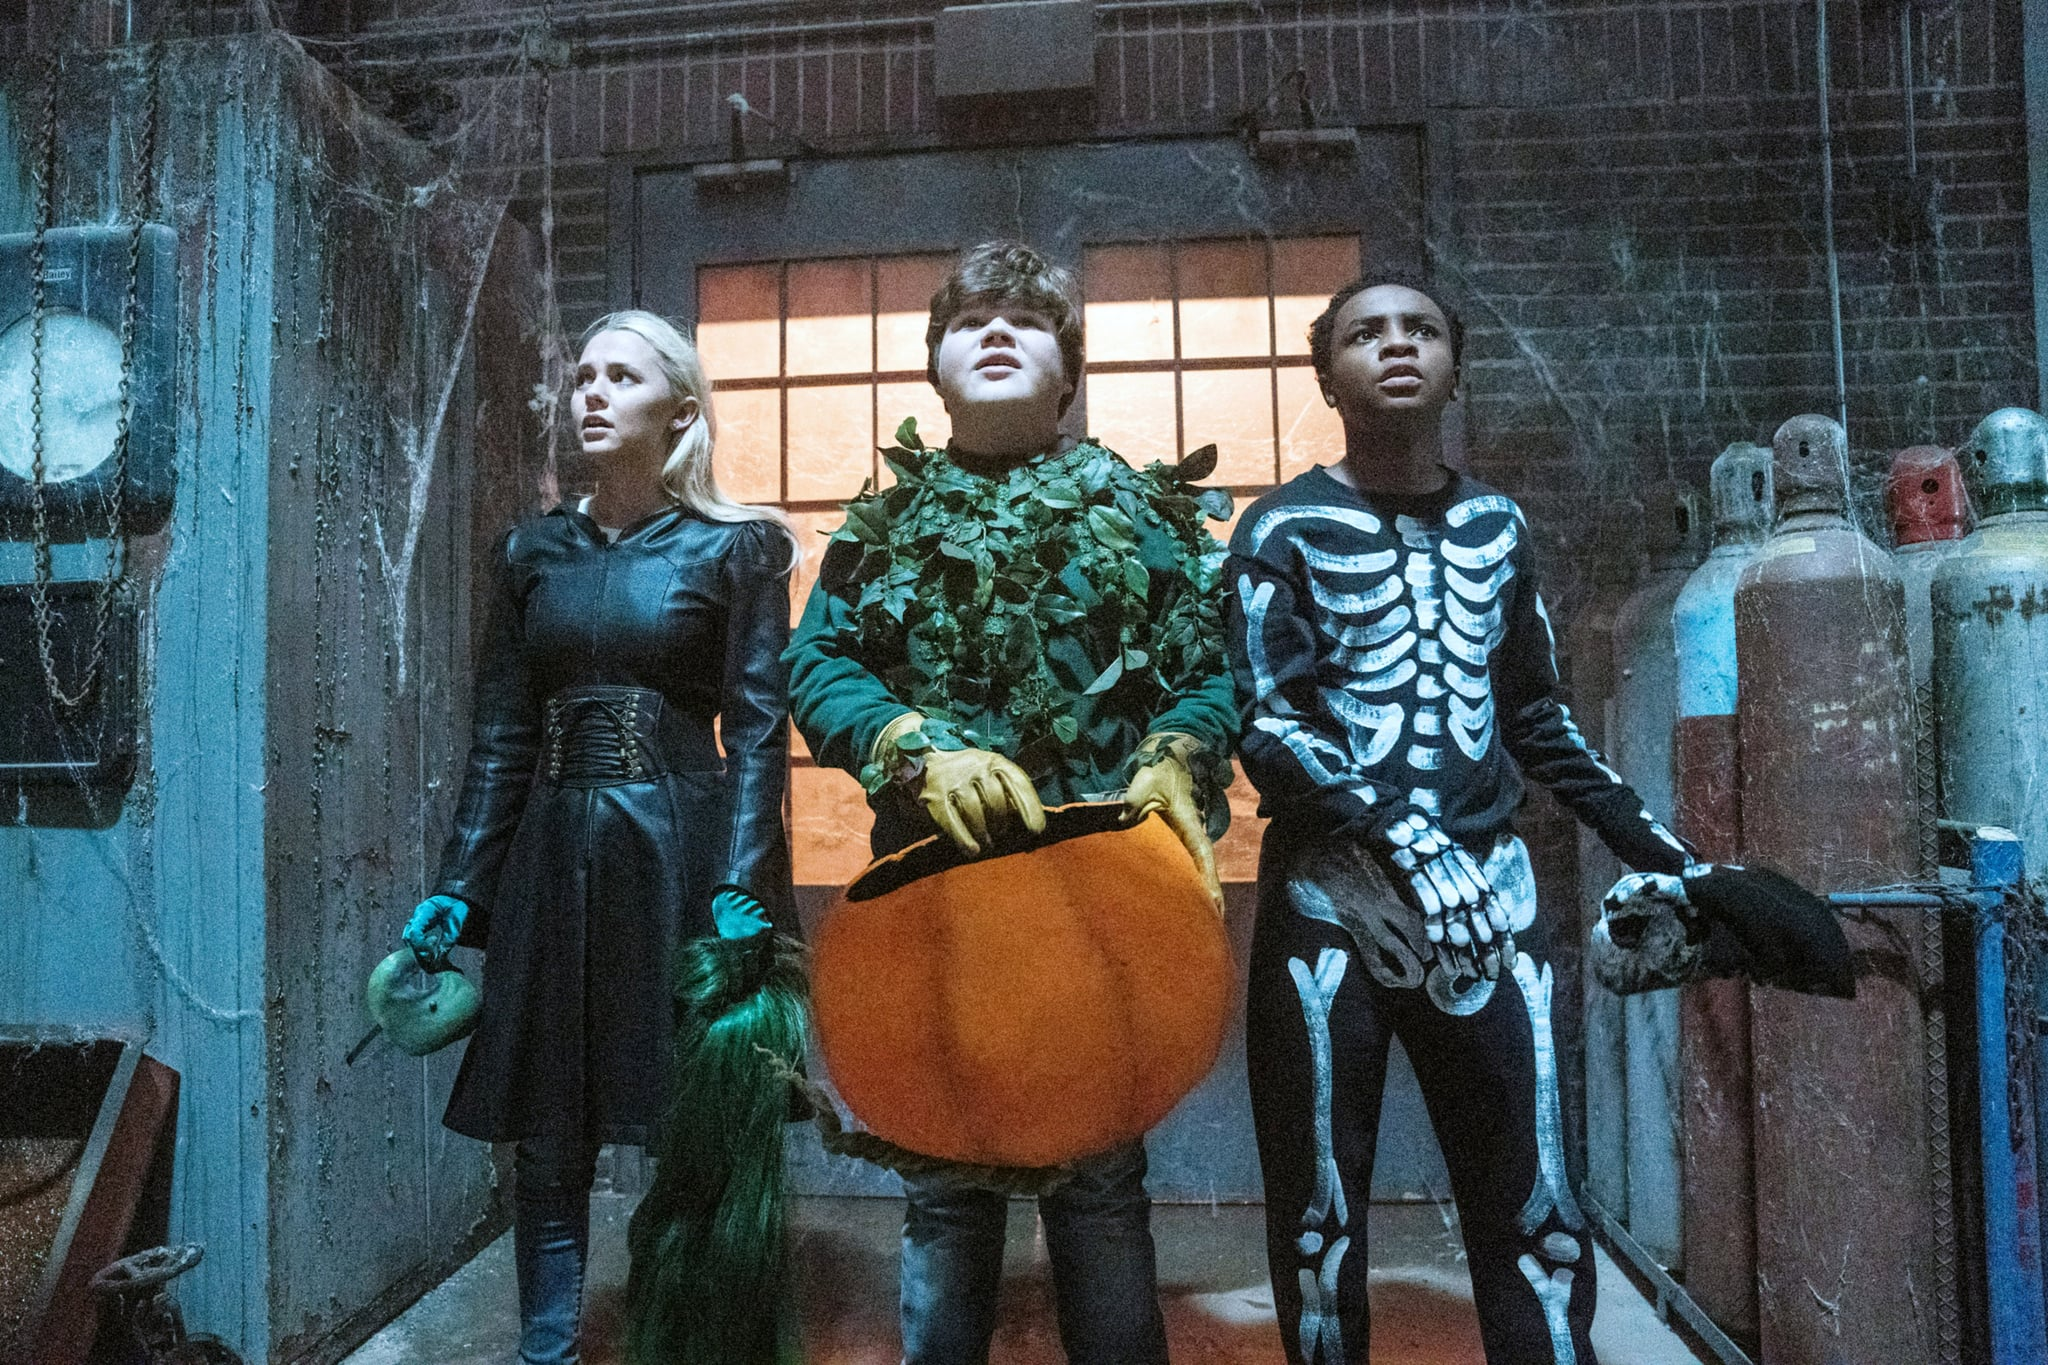 Can 13+ Watch Halloween 2020 Halloween Movies For Kids Based on Age   POPSUGAR Family